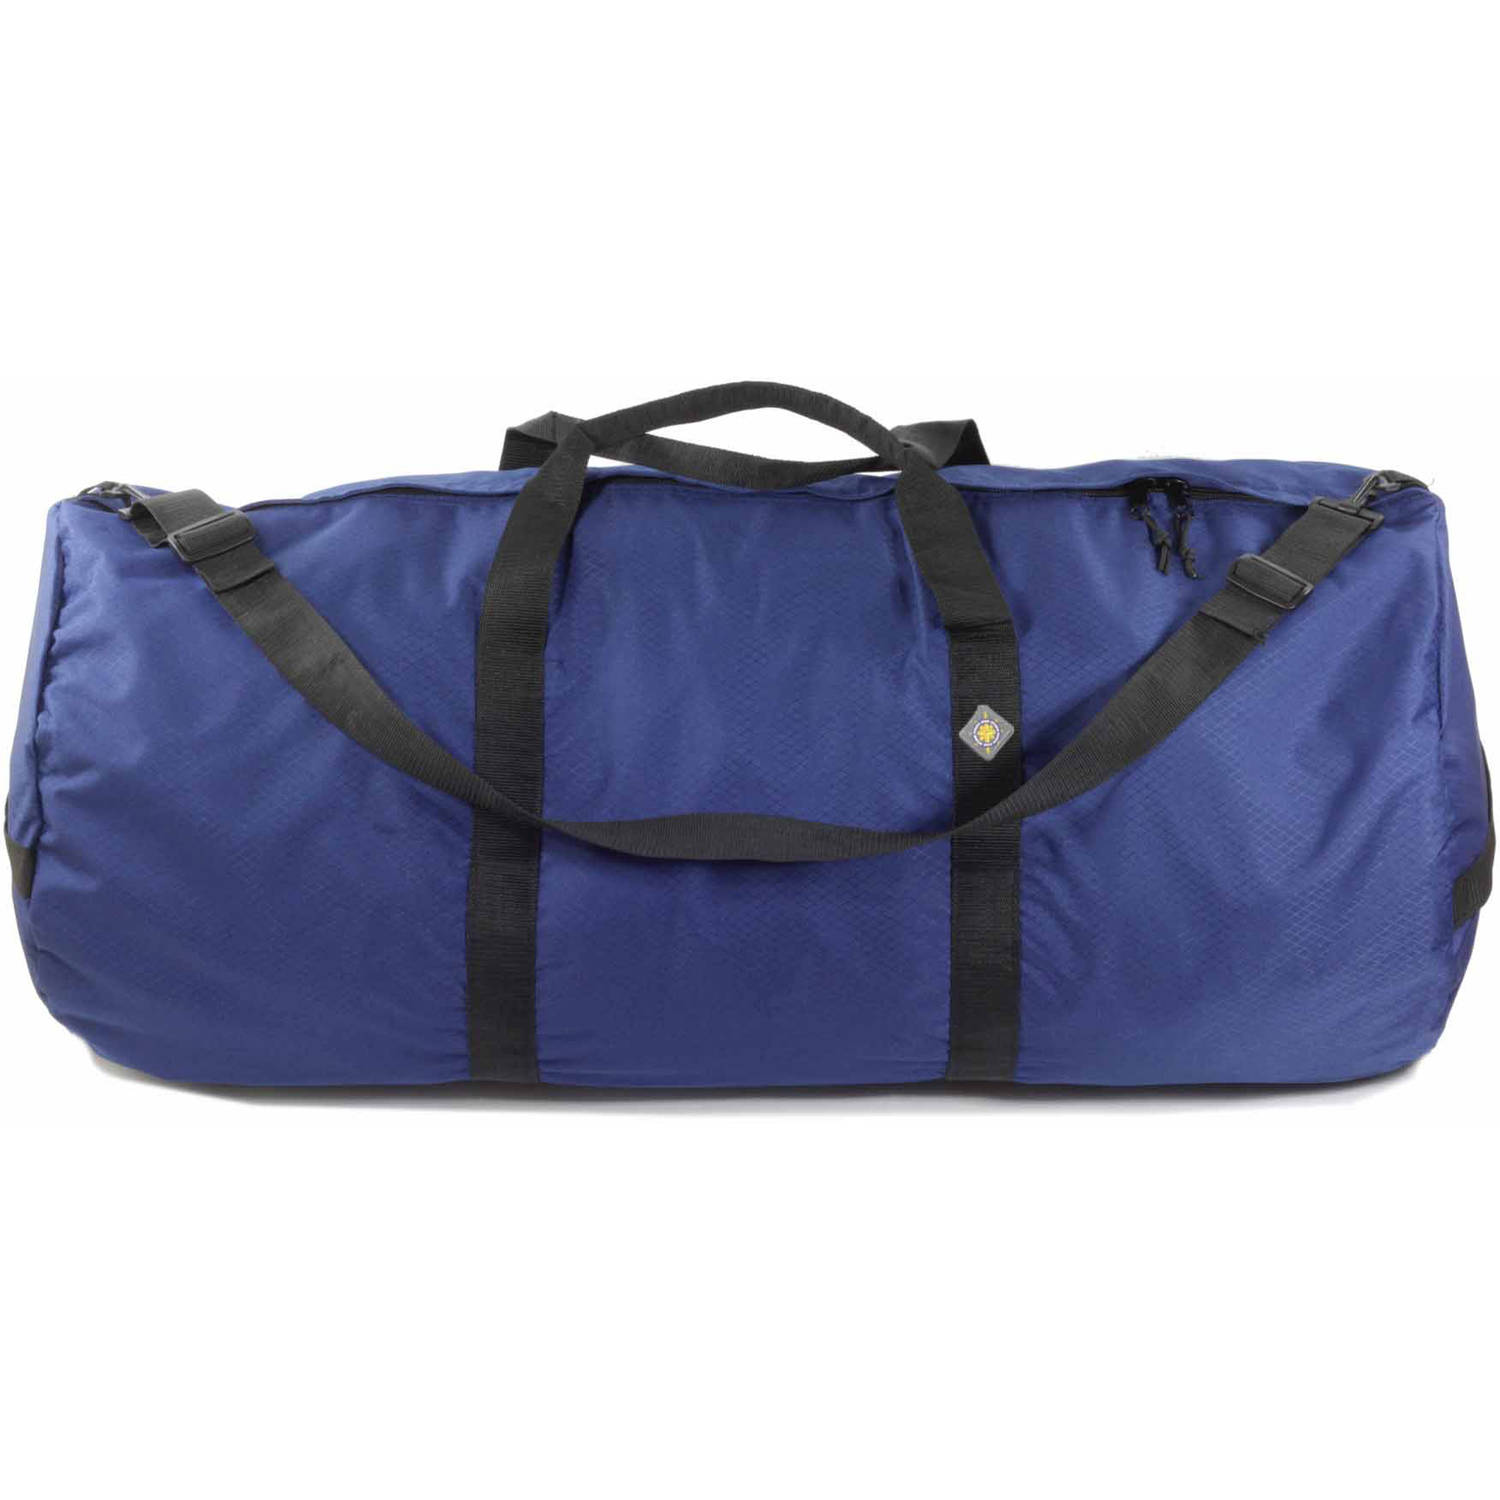 North Star SD 1842 Sport Duffle Bag, Pacific Blue by Northstar Bags